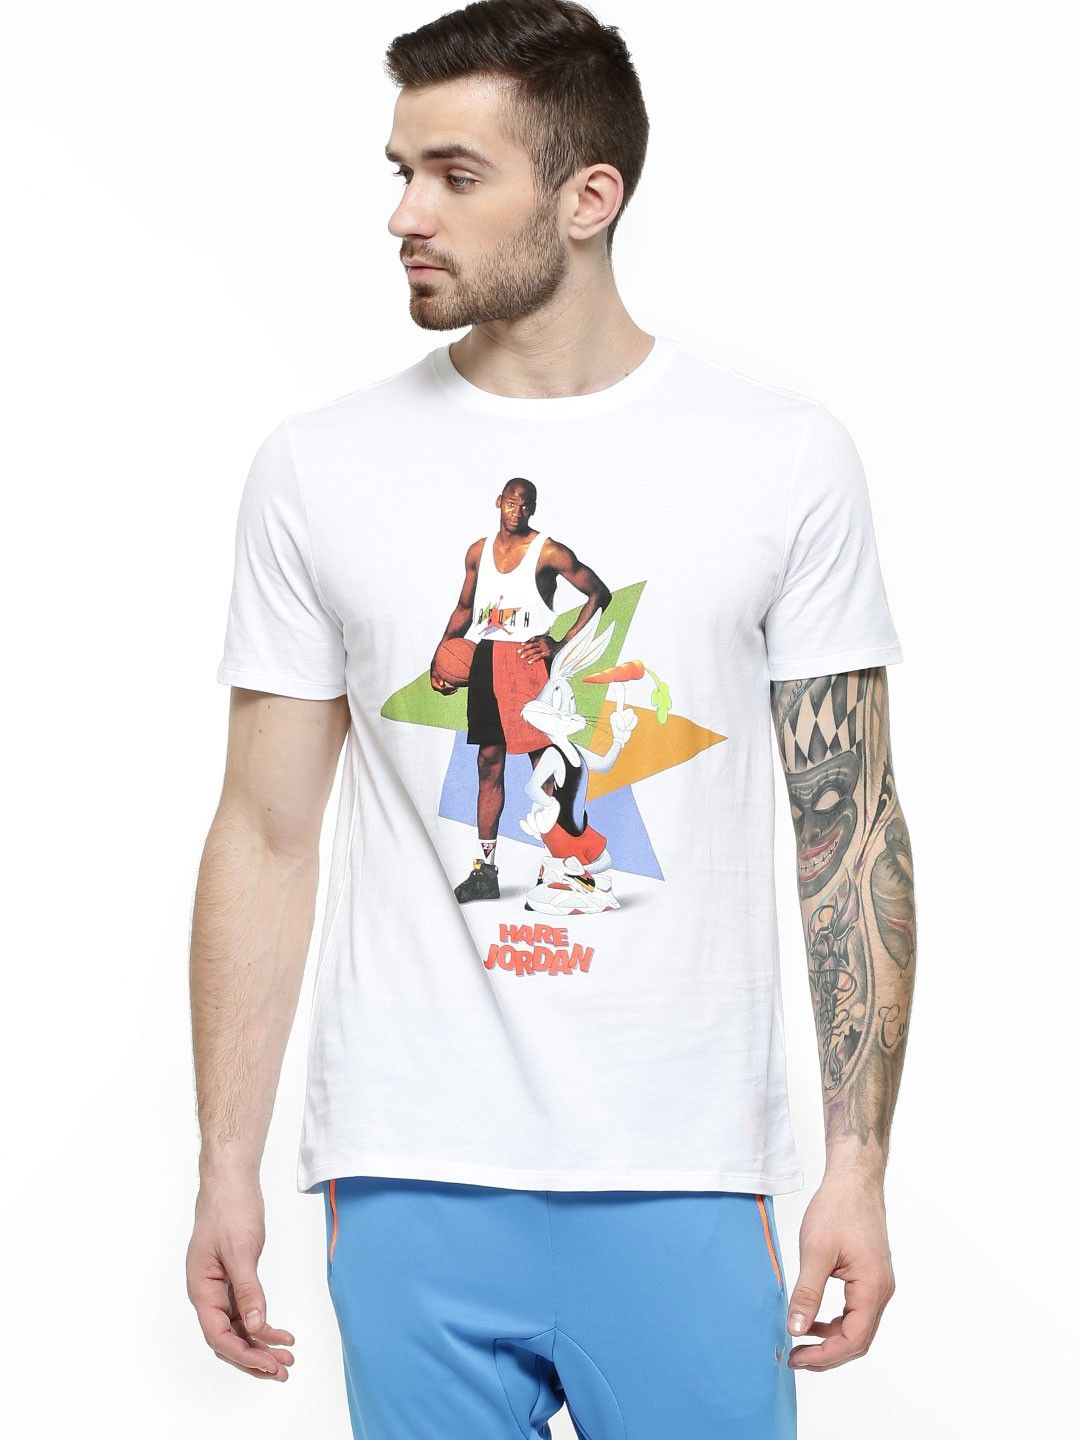 4a6bd0fd NIKE Air Jordan Hare Poster T-shirt - Buy Men's Tee Shirts online in India  | KOOVS